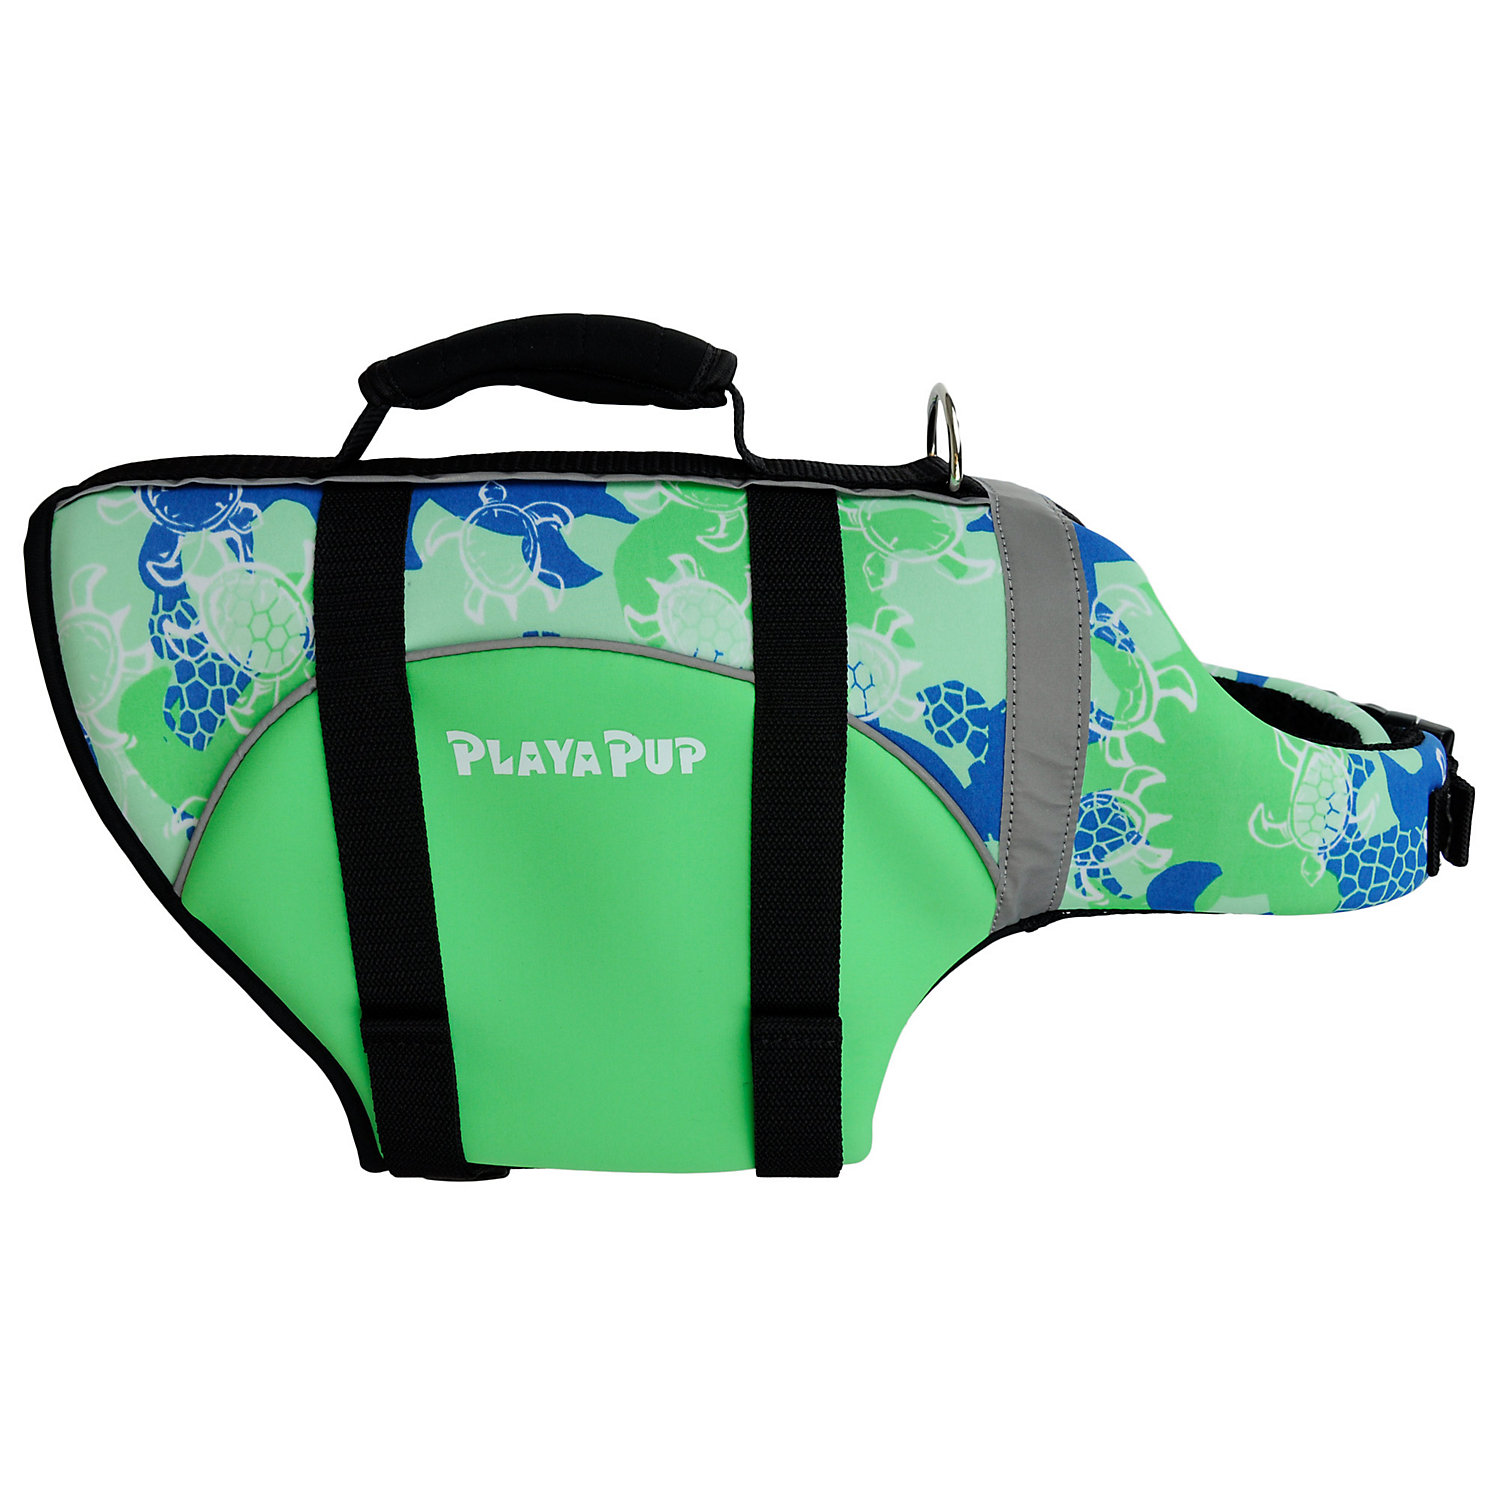 Image of Playa Pup Green Dog Flotation Vest, Medium